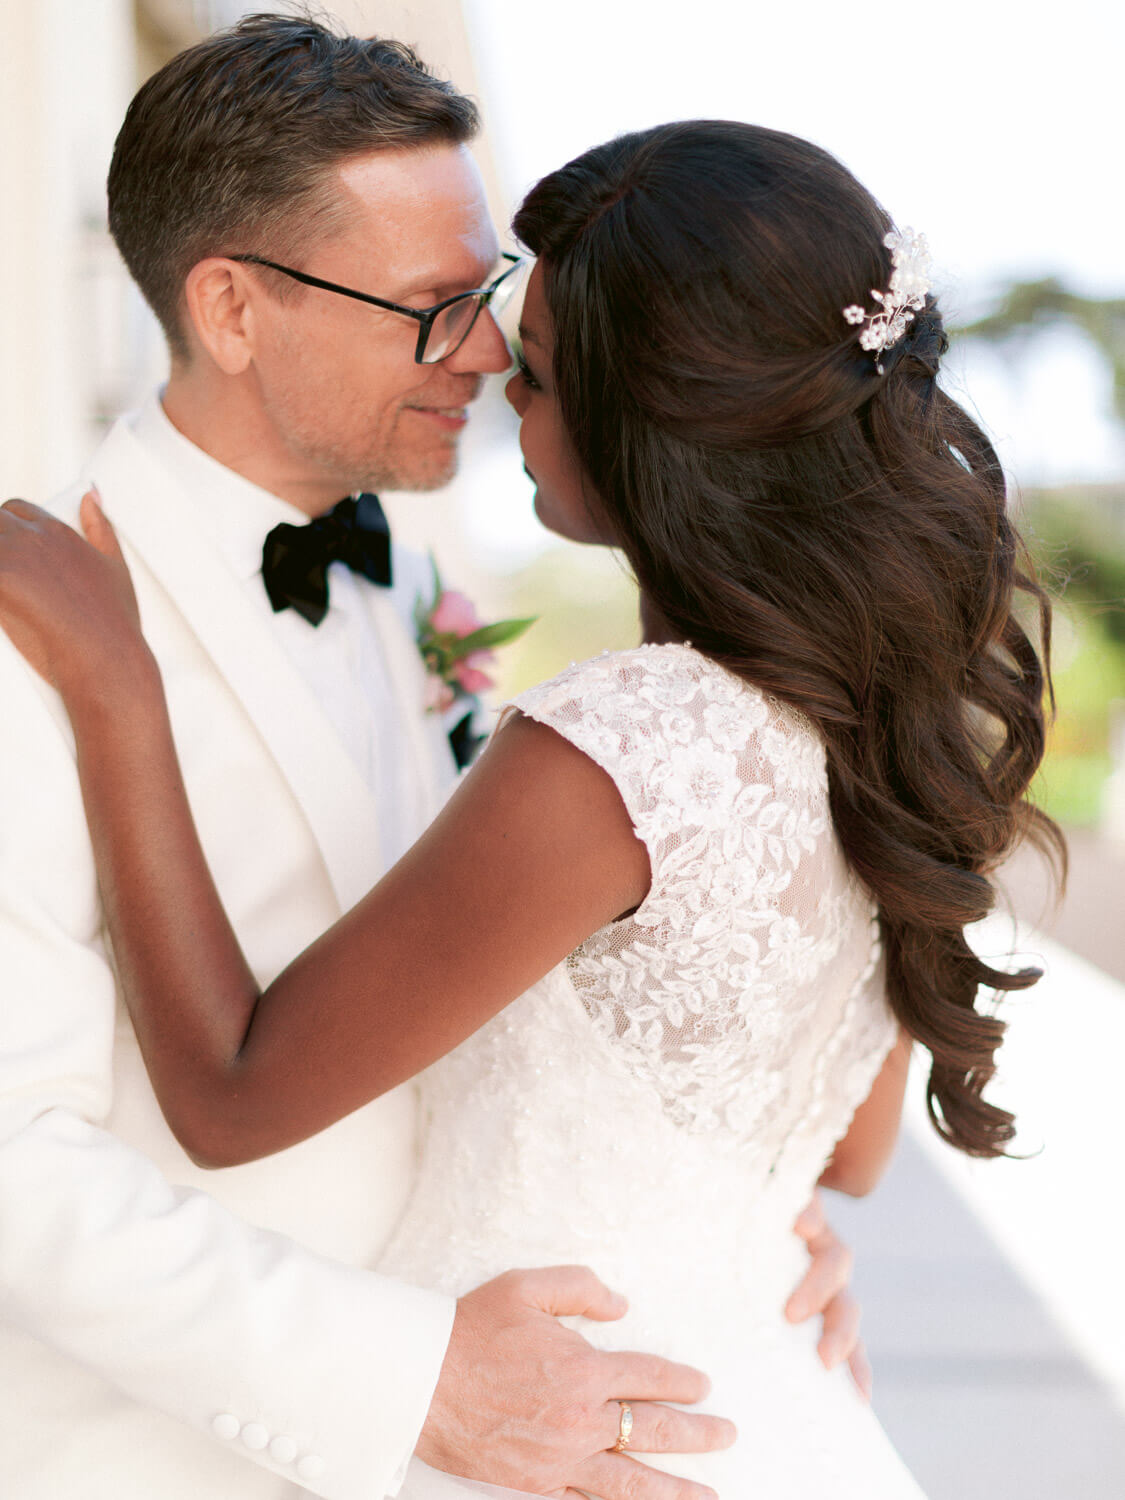 bride and groom affectionate moment in Hotel Palacio Estoril by Portugal Wedding Photographer